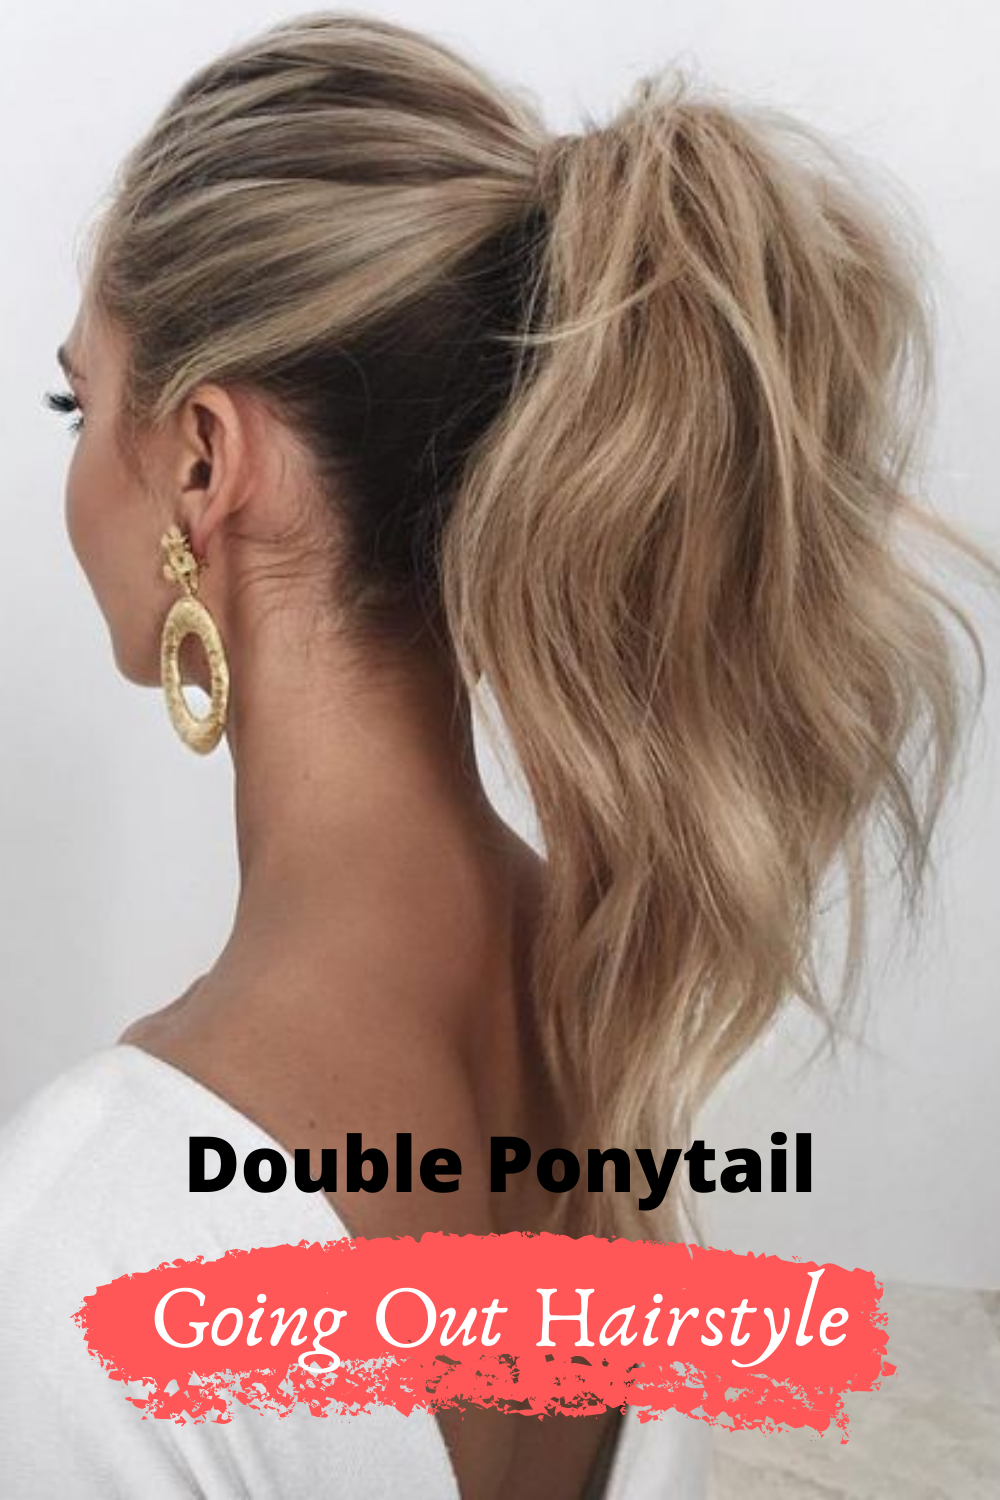 5 Perfect Going Out Hairstyle Ideas 2020 in Hair Style